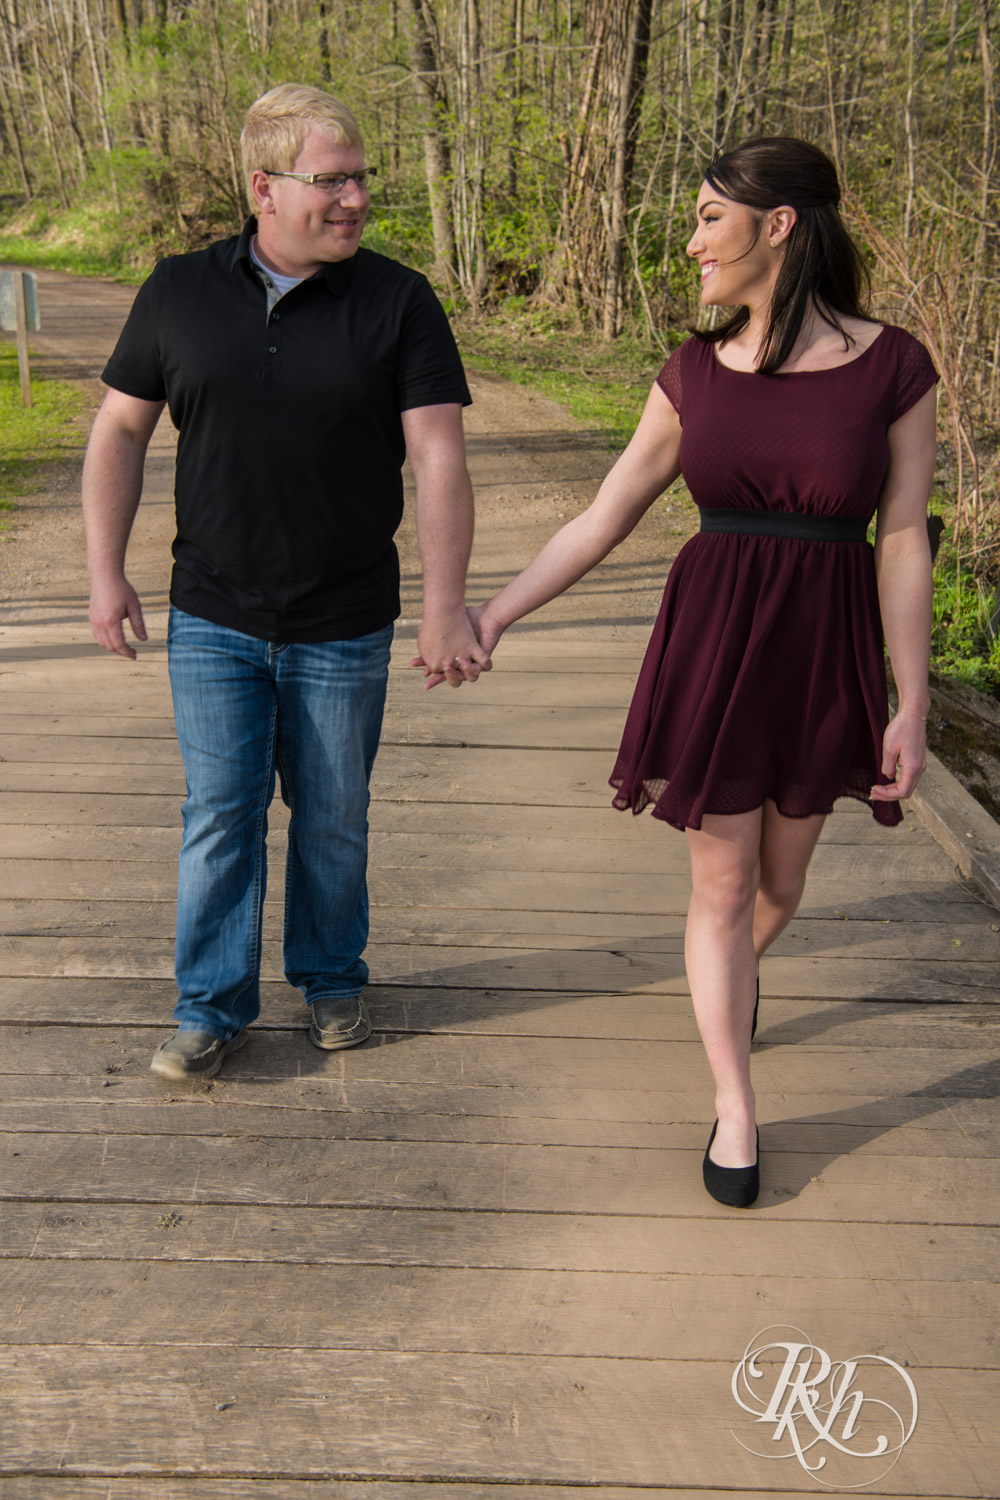 Chelsey & Erik - Minnesota Engagement Photography - Creekside Farm and Events - Rush City - RKH Images  (4 of 18).jpg